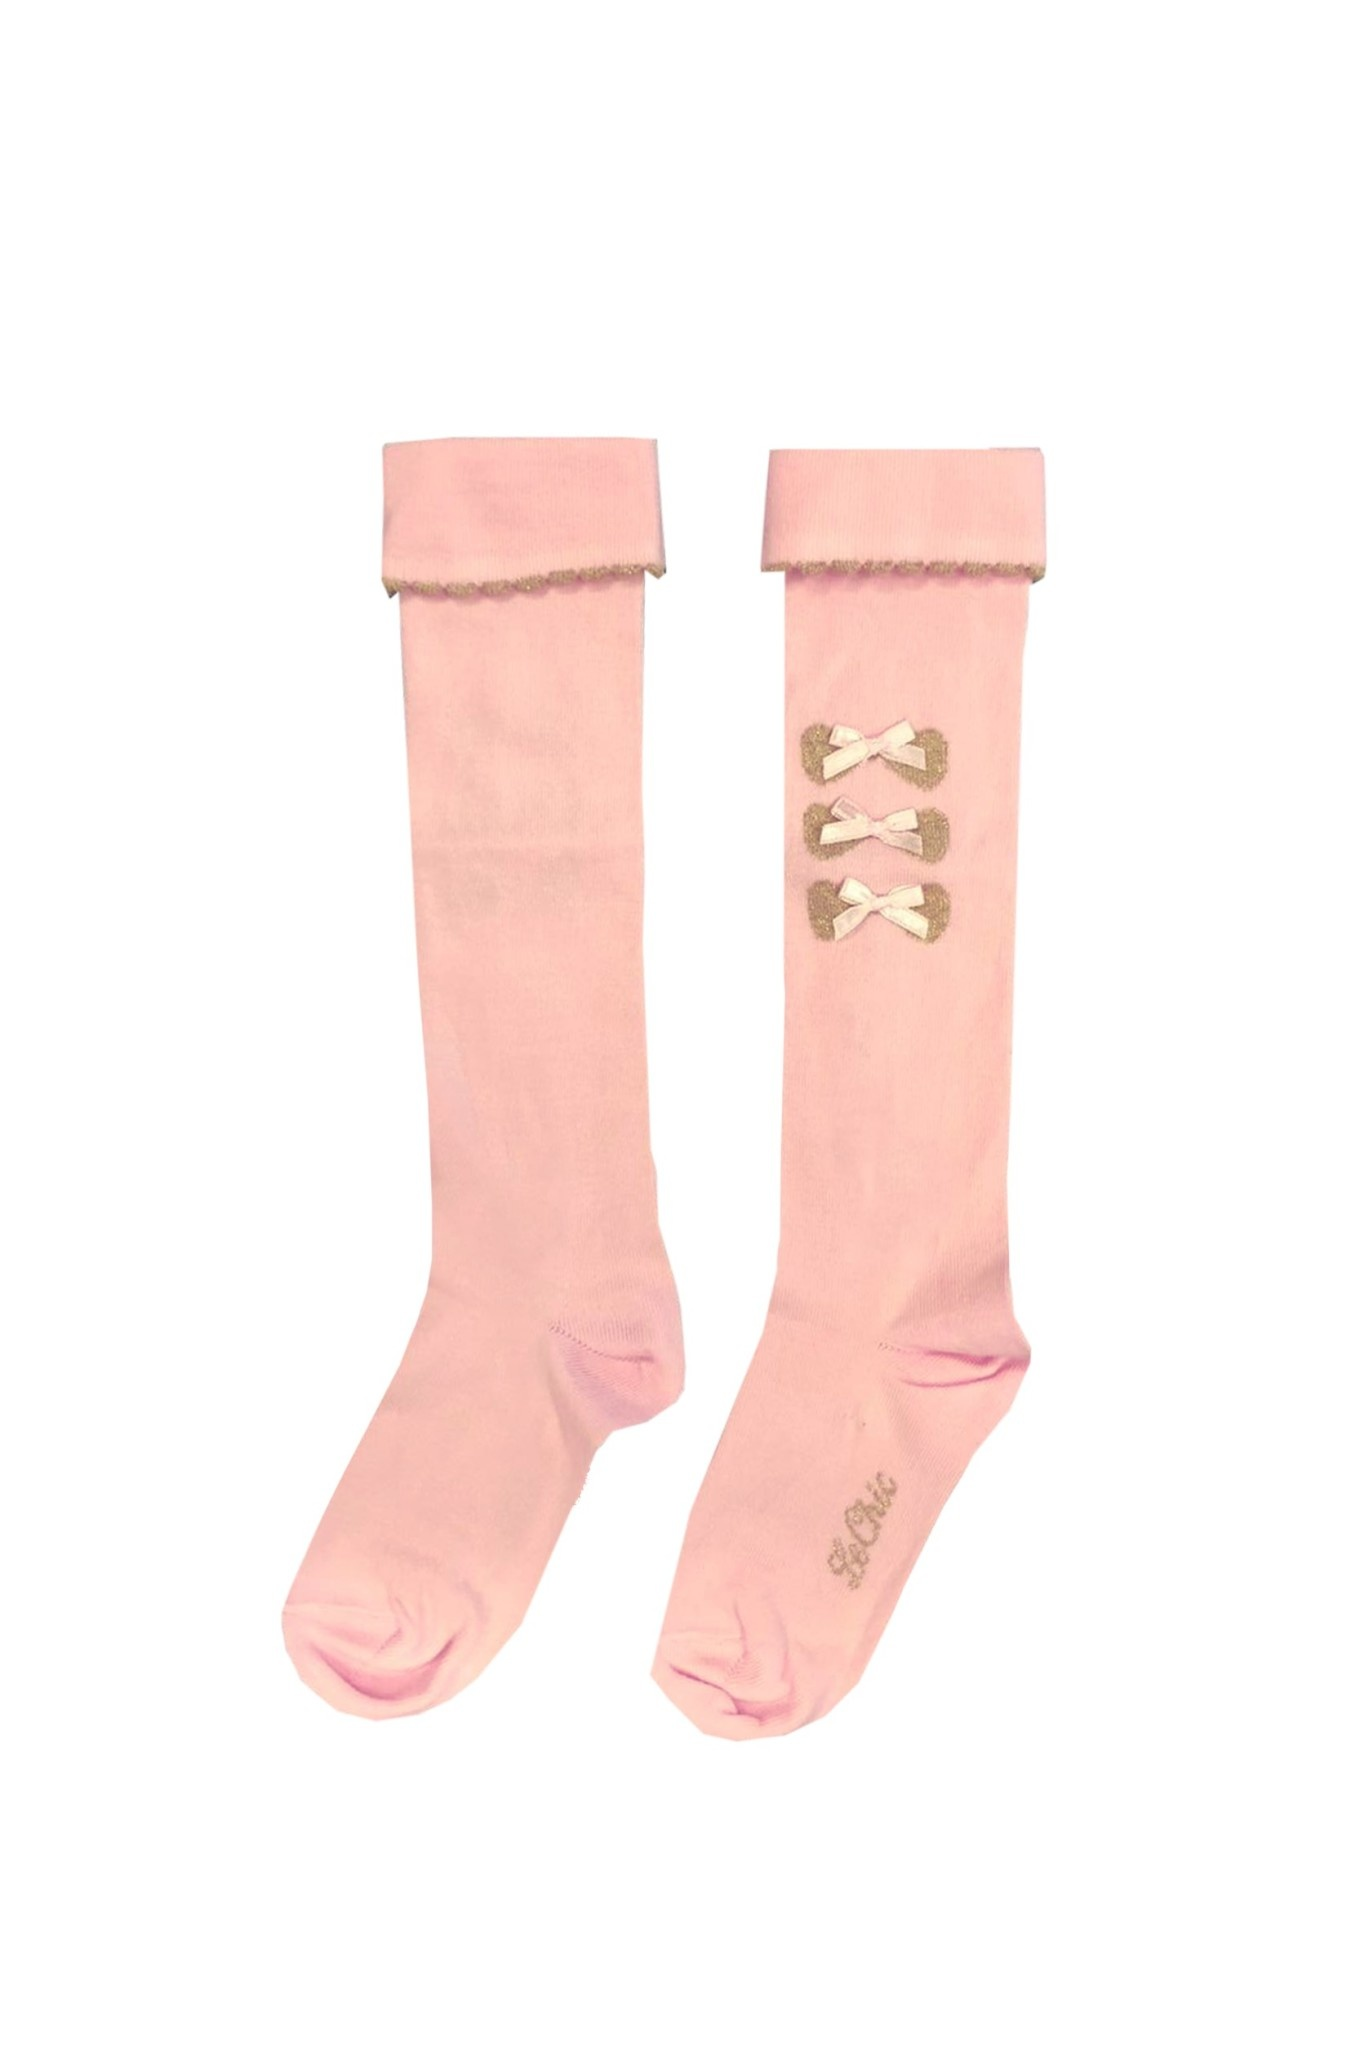 Lechic LeChic Pink Knee-high Sock With gold Bows